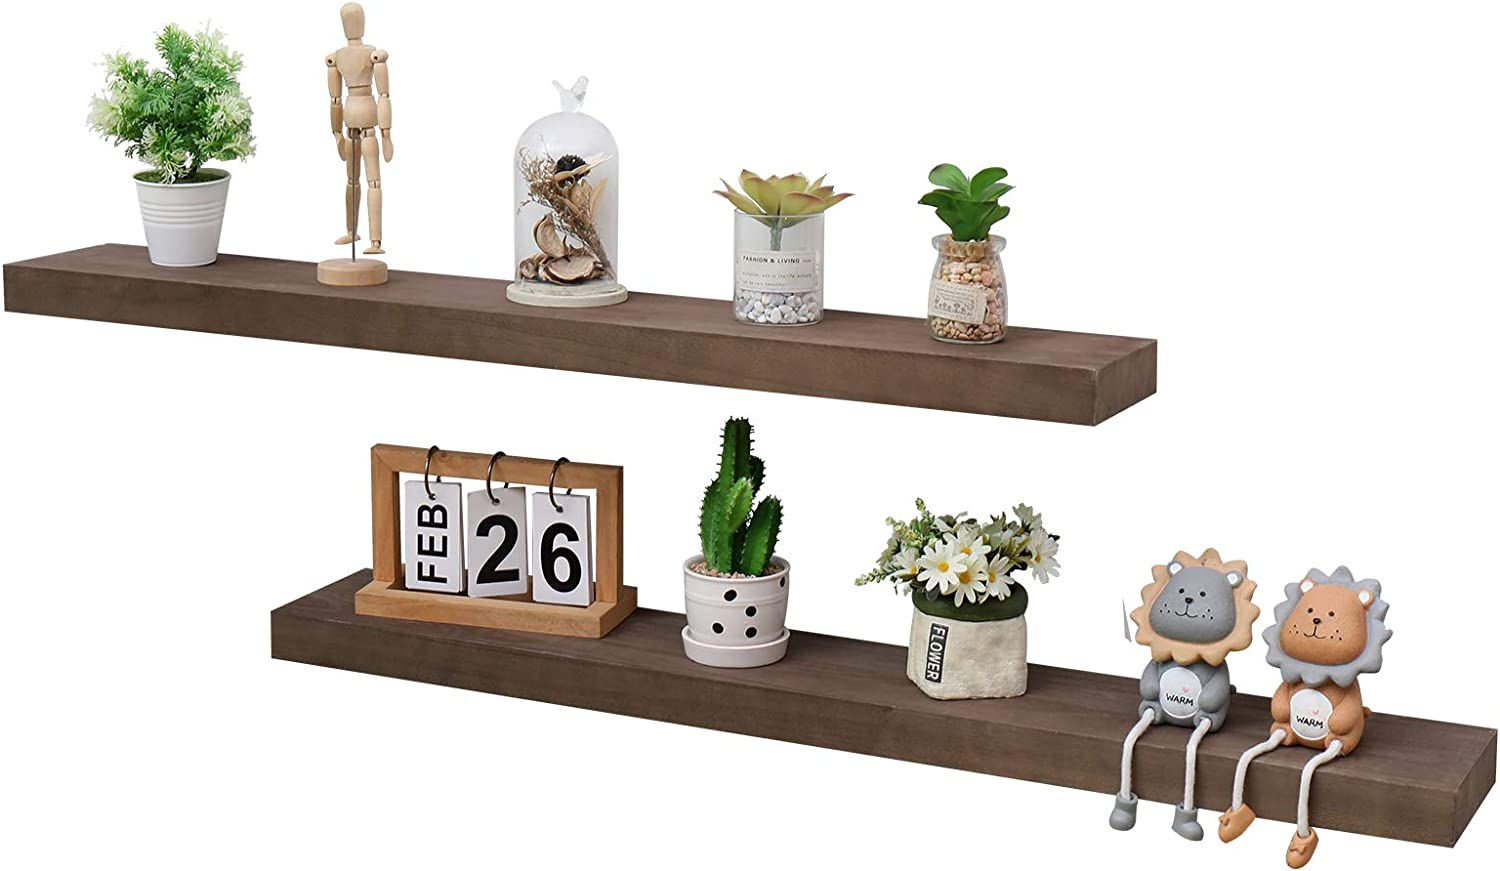 No/Brand Floating Wall Shelf, Farmhouse Decorative 2 Tier Torched Wood Industrial Wood Wall Mounted Shelves, Heavy Duty Wooden Shelf with Brackets for Bathroom,Kitchen, Office.(24 Inches Dark Walnut)